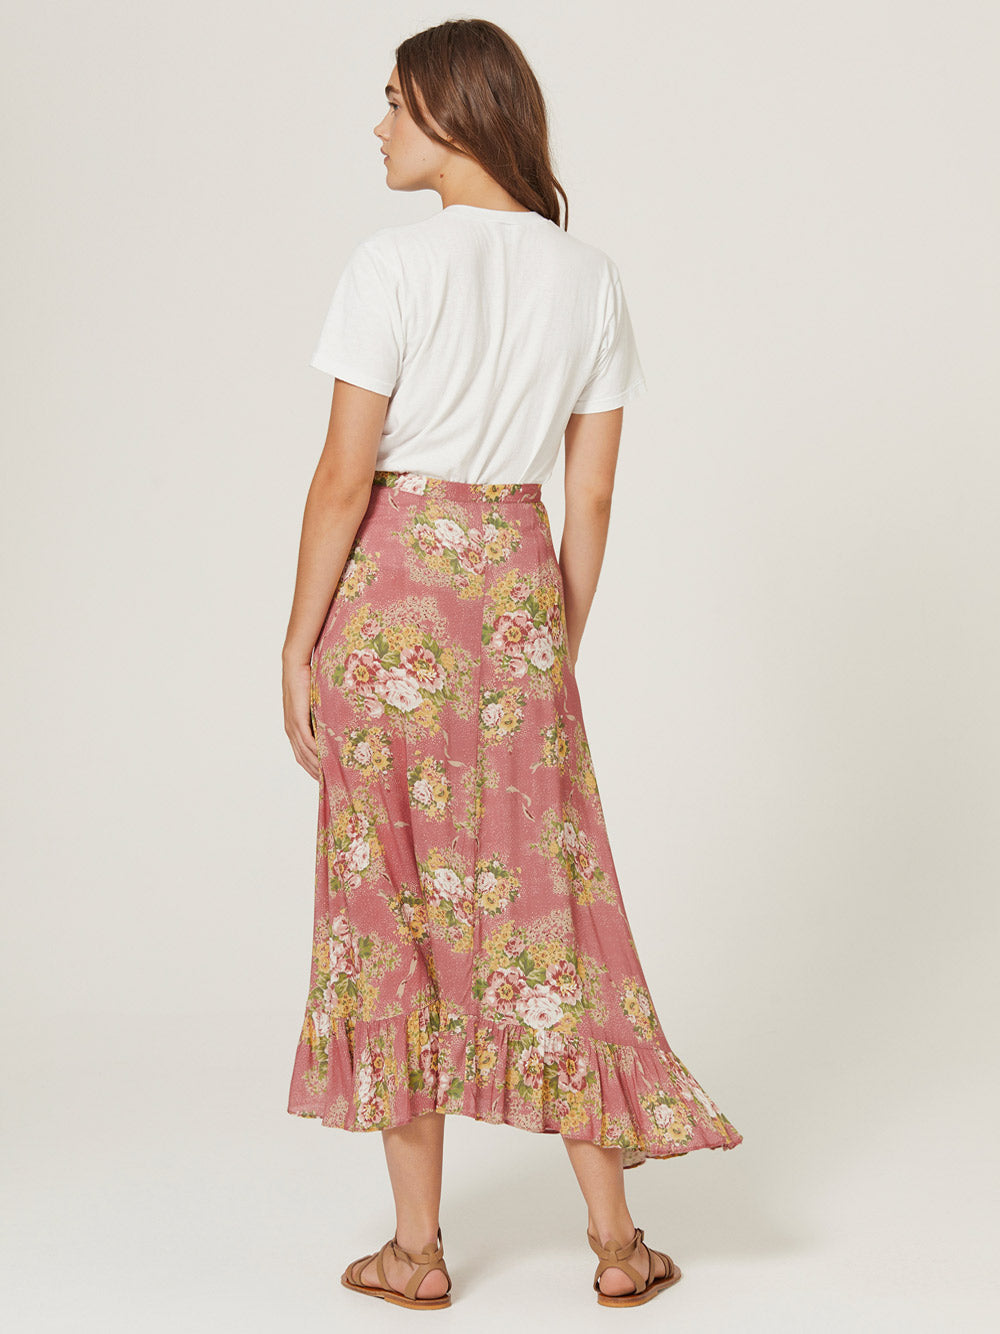 AUGUSTE Bonnie Cascade Wrap Skirt - Peach